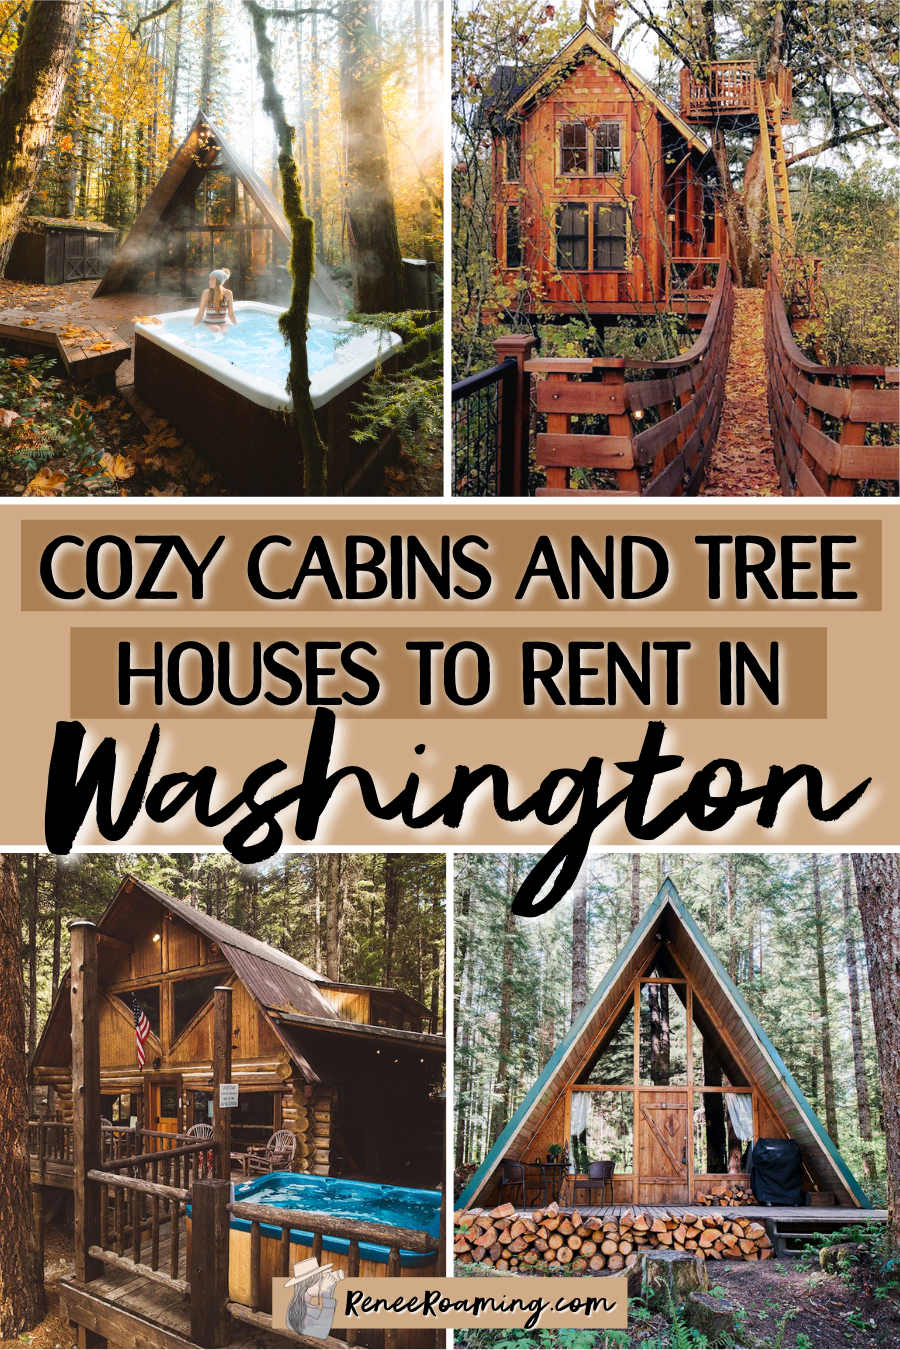 24 Cozy Cabins and Tree Houses to Rent in Washington State